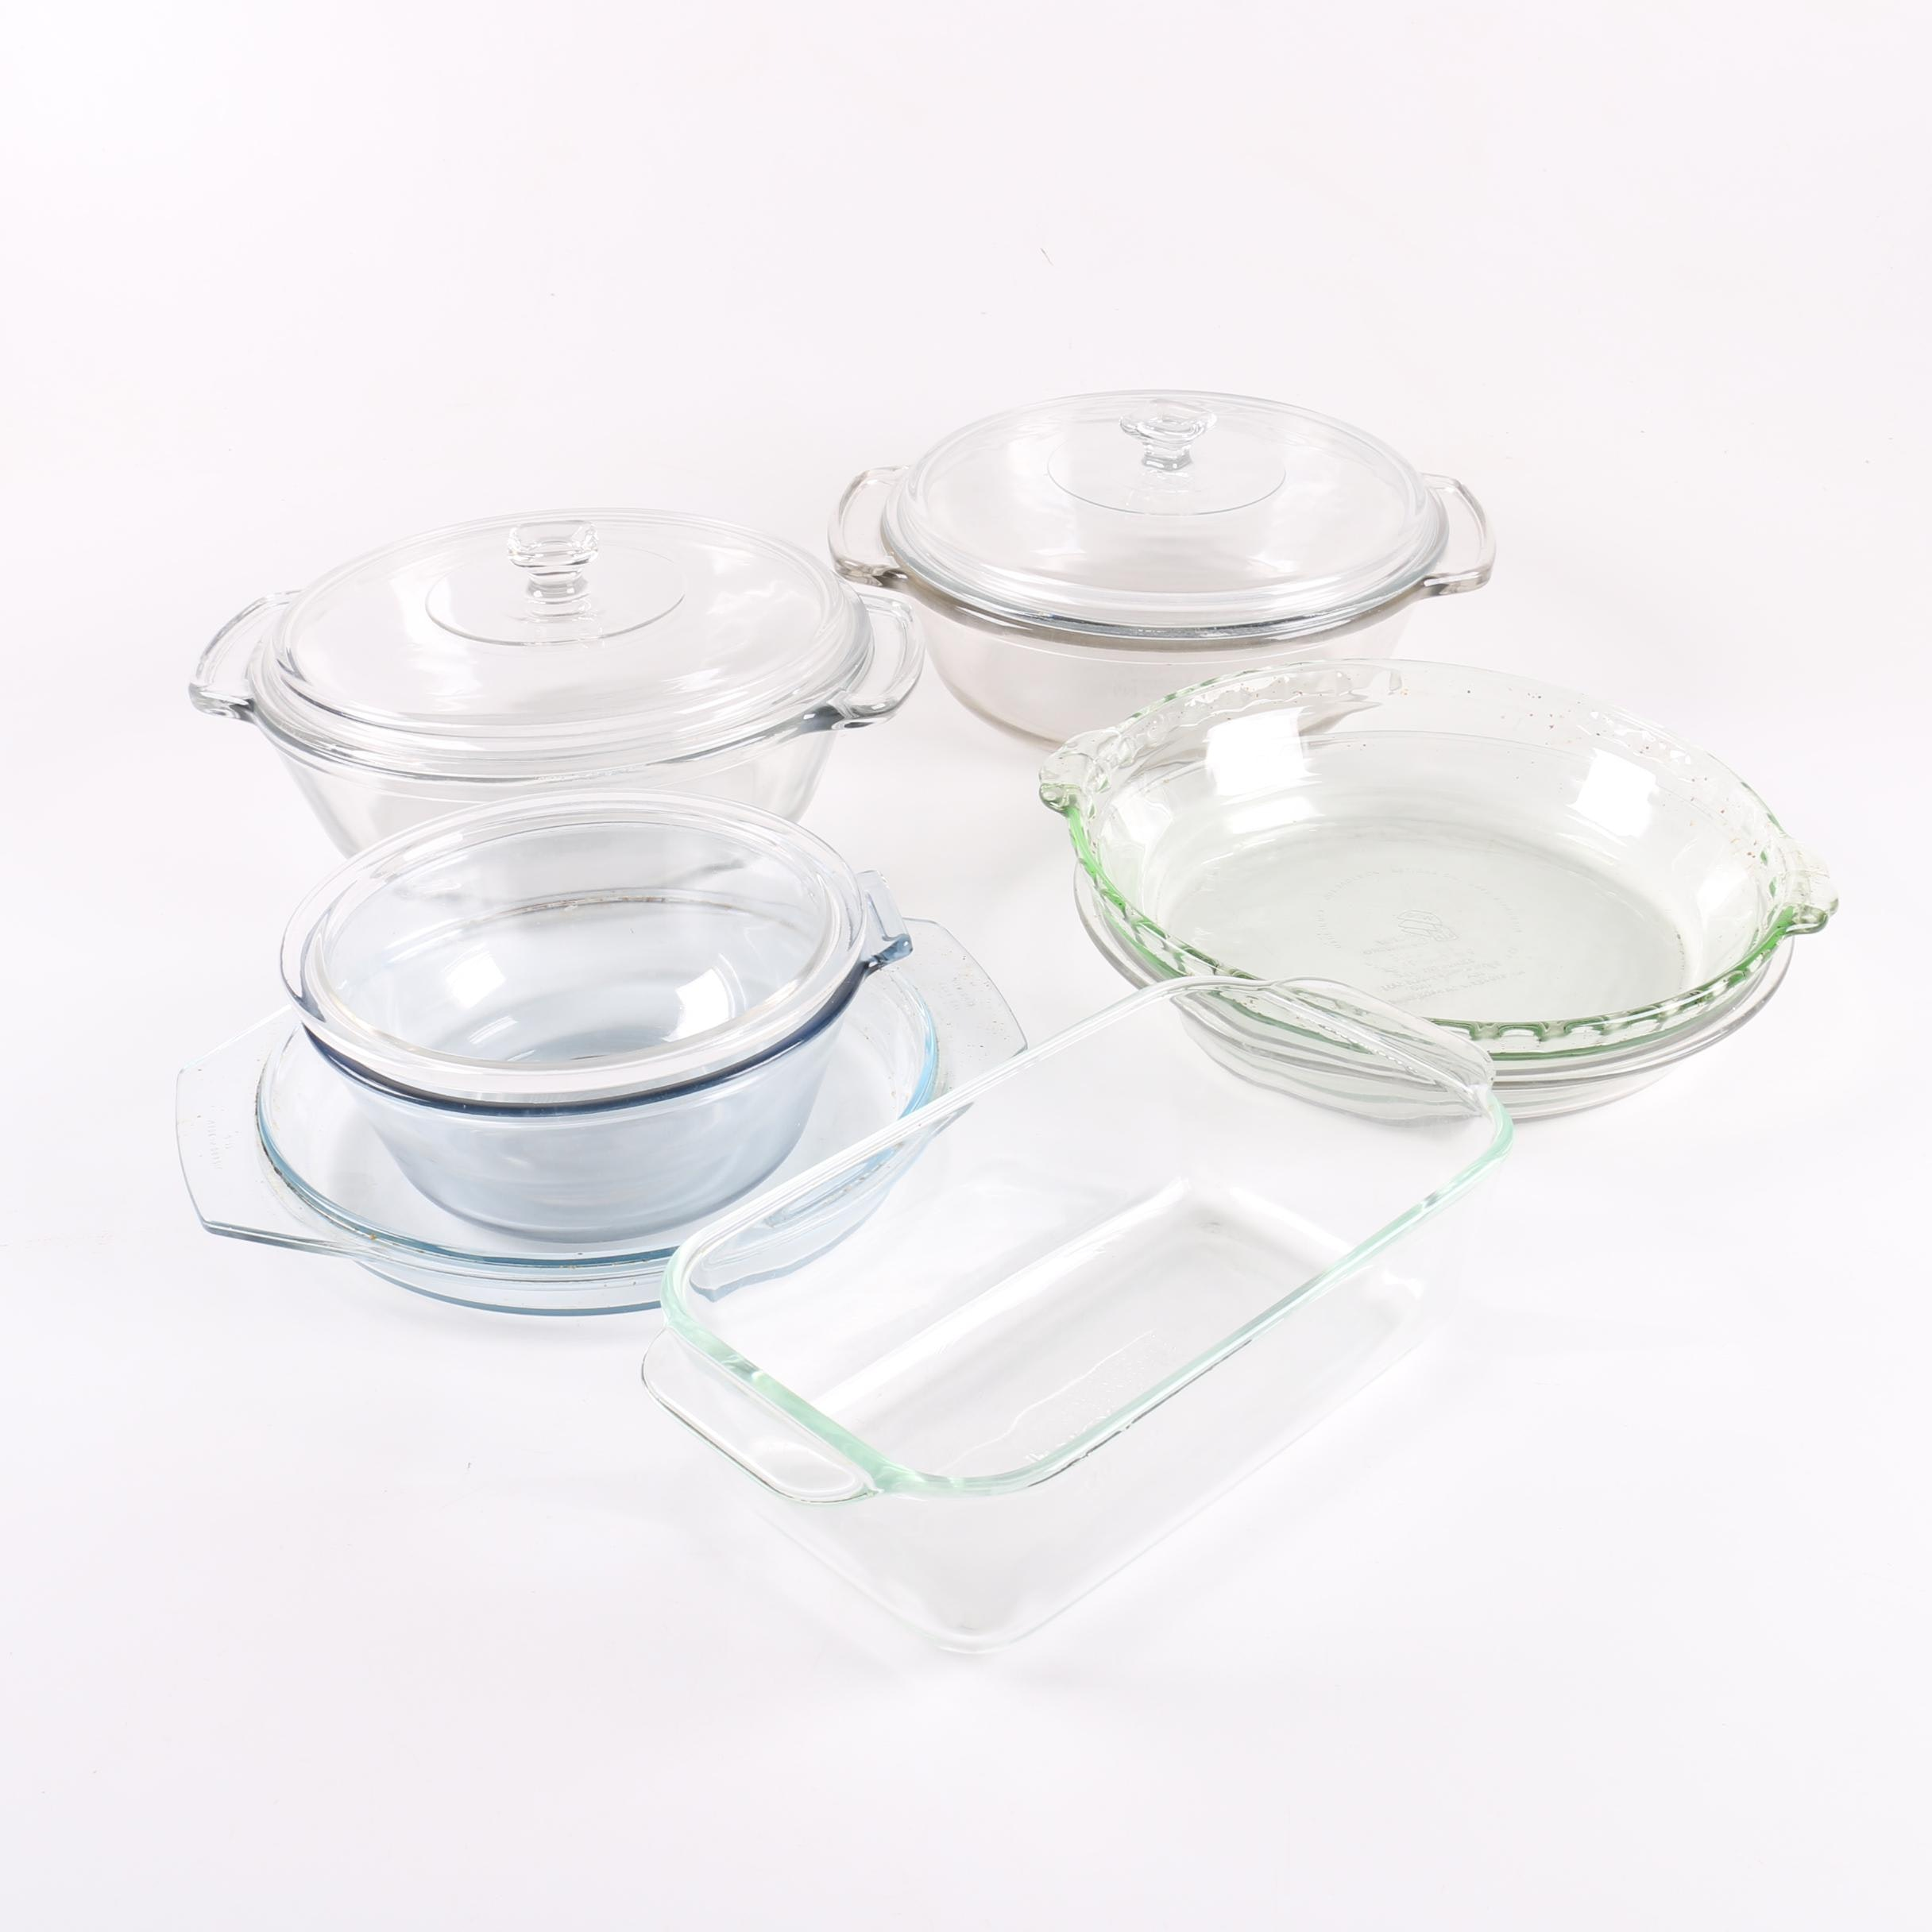 Glass Bakeware Including Pyrex